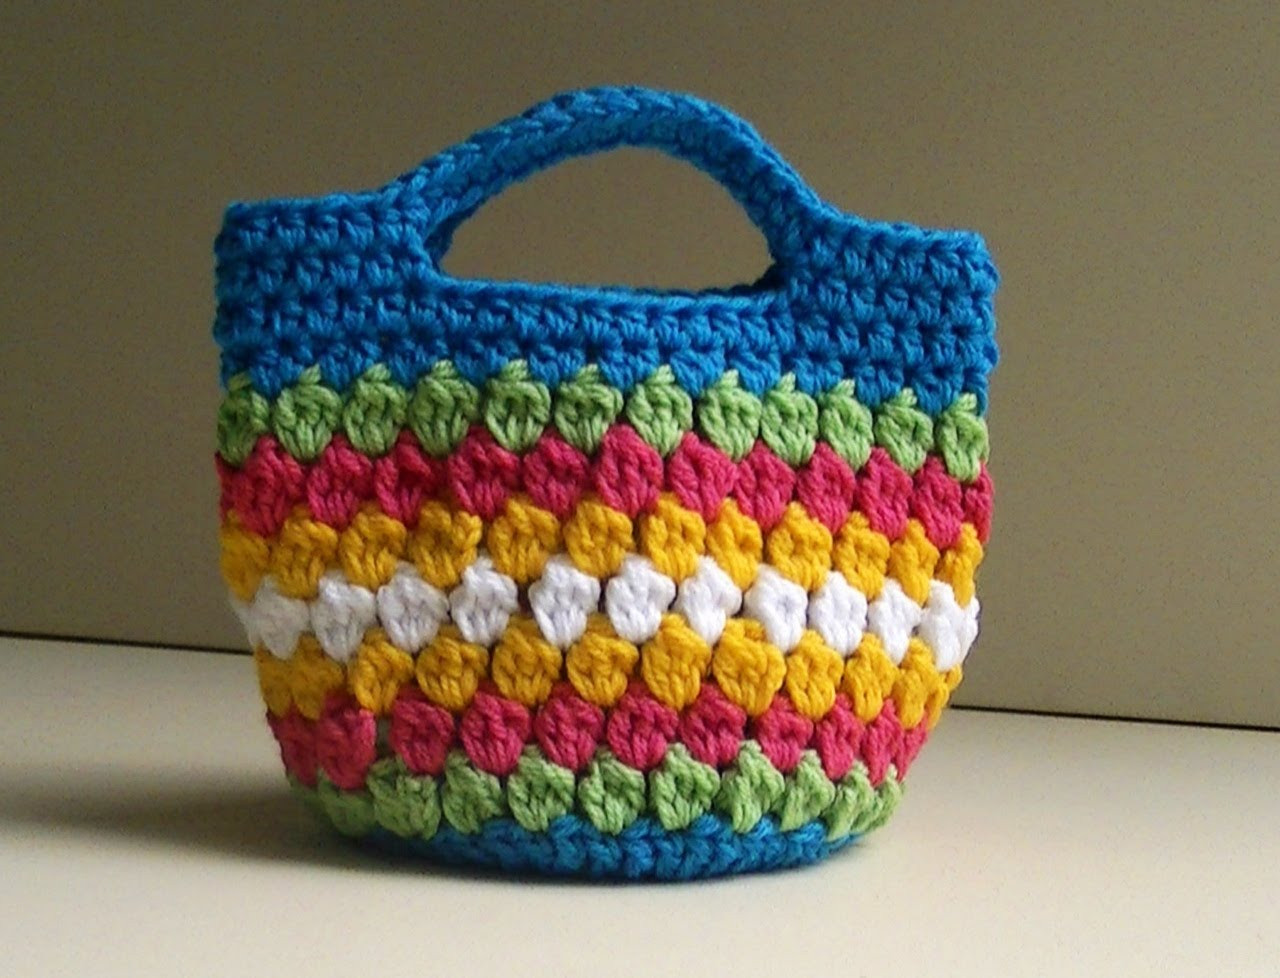 Crochet Purses Inspirational Cluster Stitch Bag Crochet Video Tutorial the Of Luxury 41 Pictures Crochet Purses